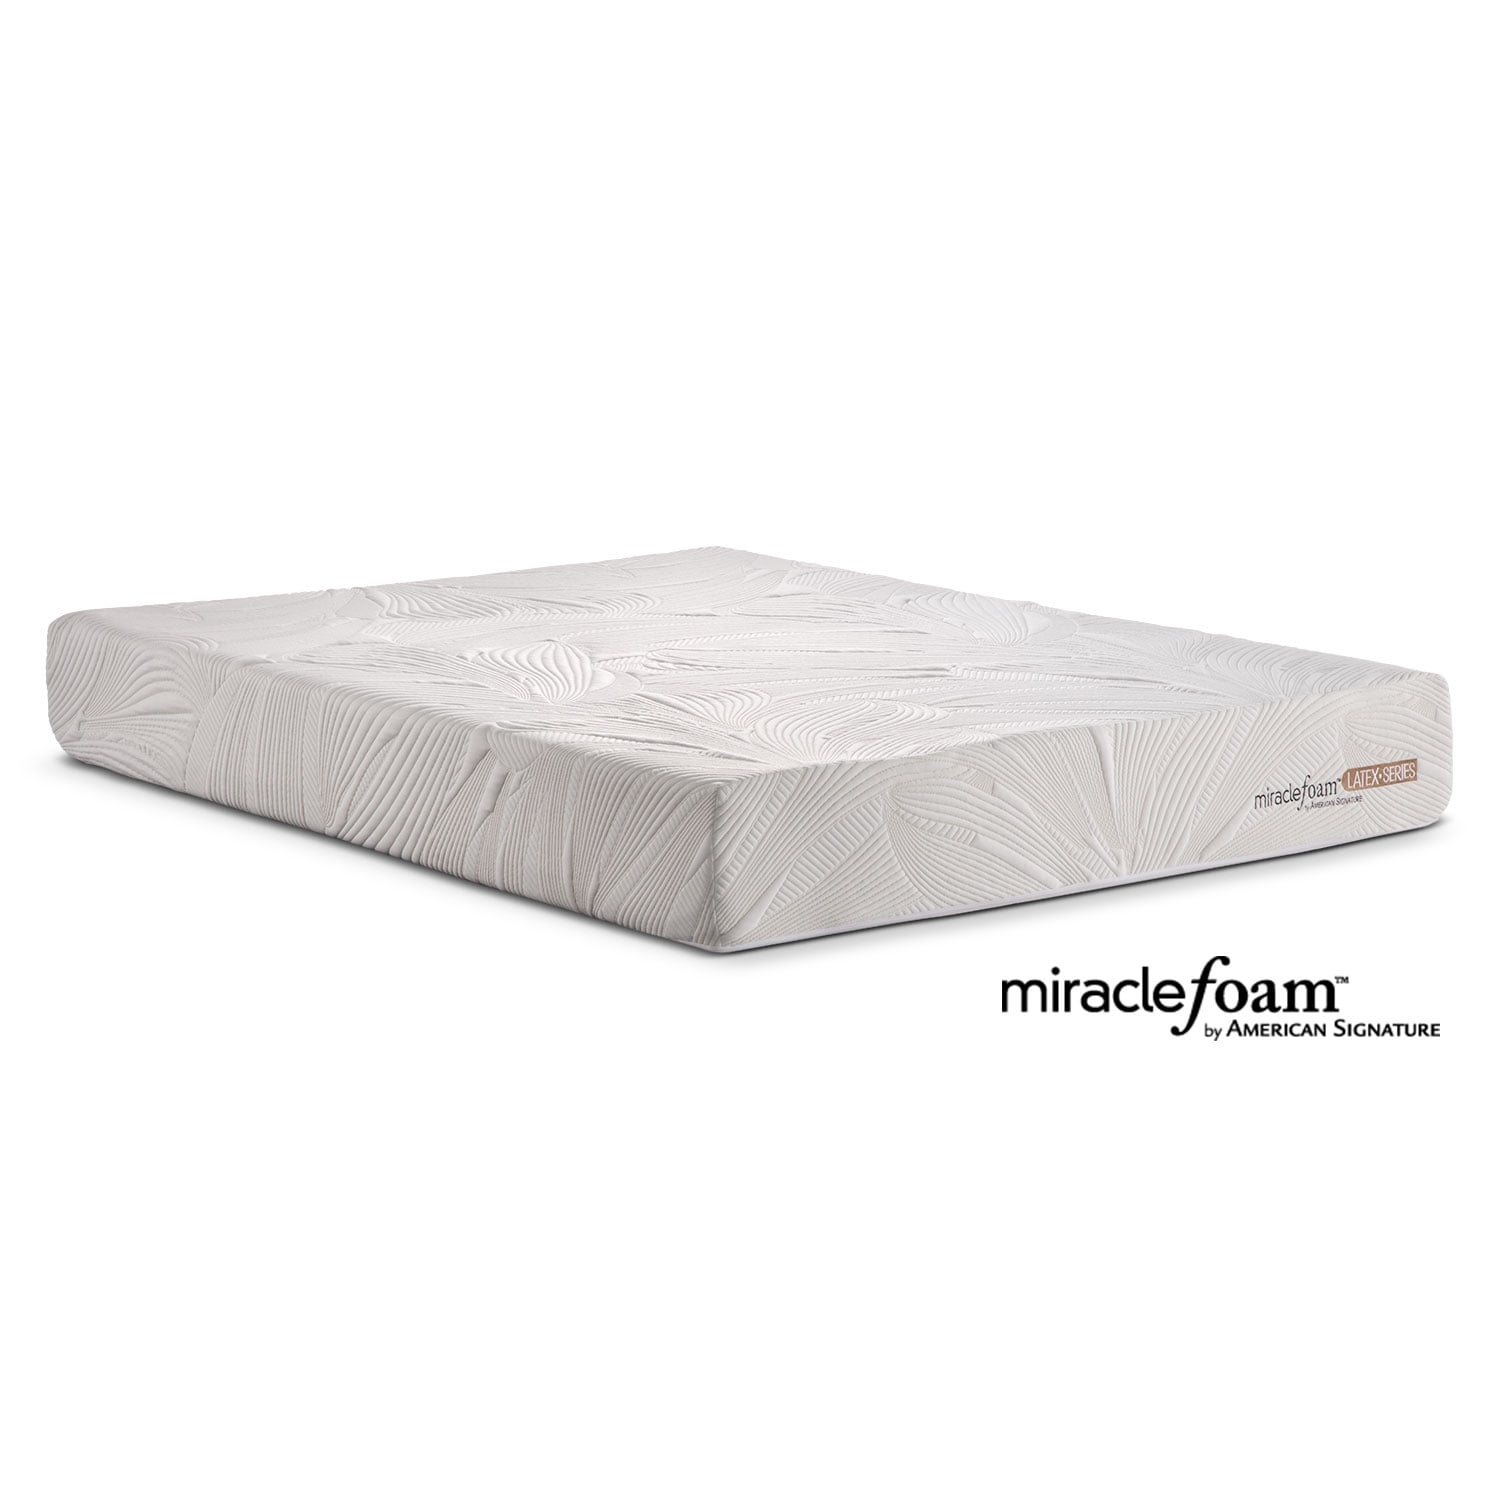 Mattresses and Bedding - Tranquil Twin Mattress